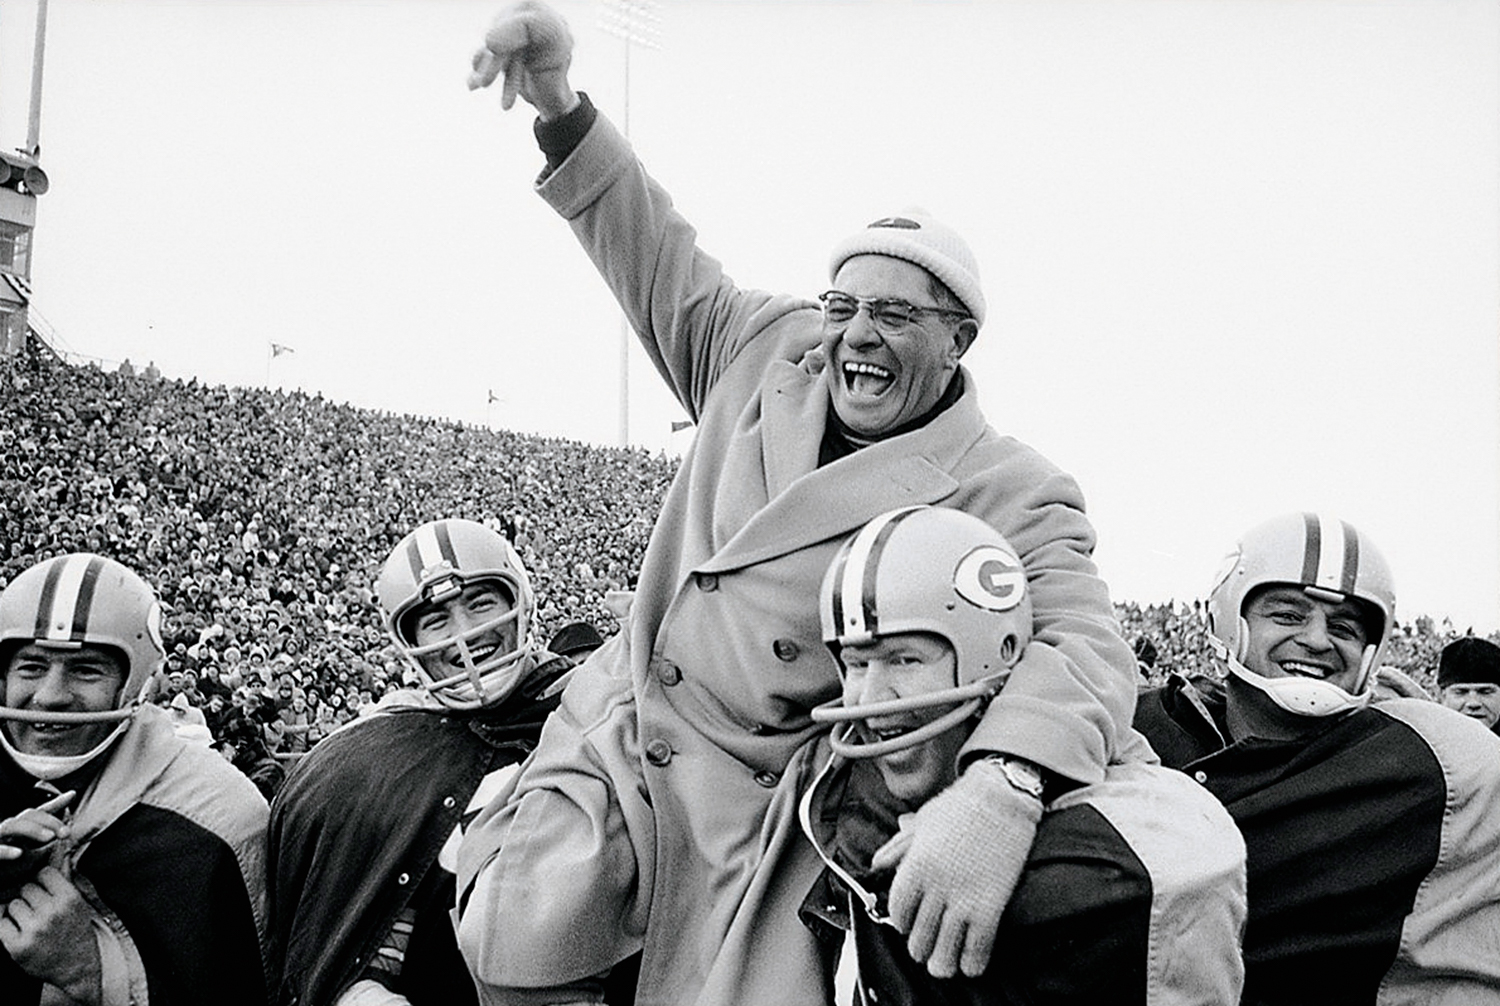 ... New York Giants, Green Bay, WI 12/31/1961 (Photo by Marvin E. Newman